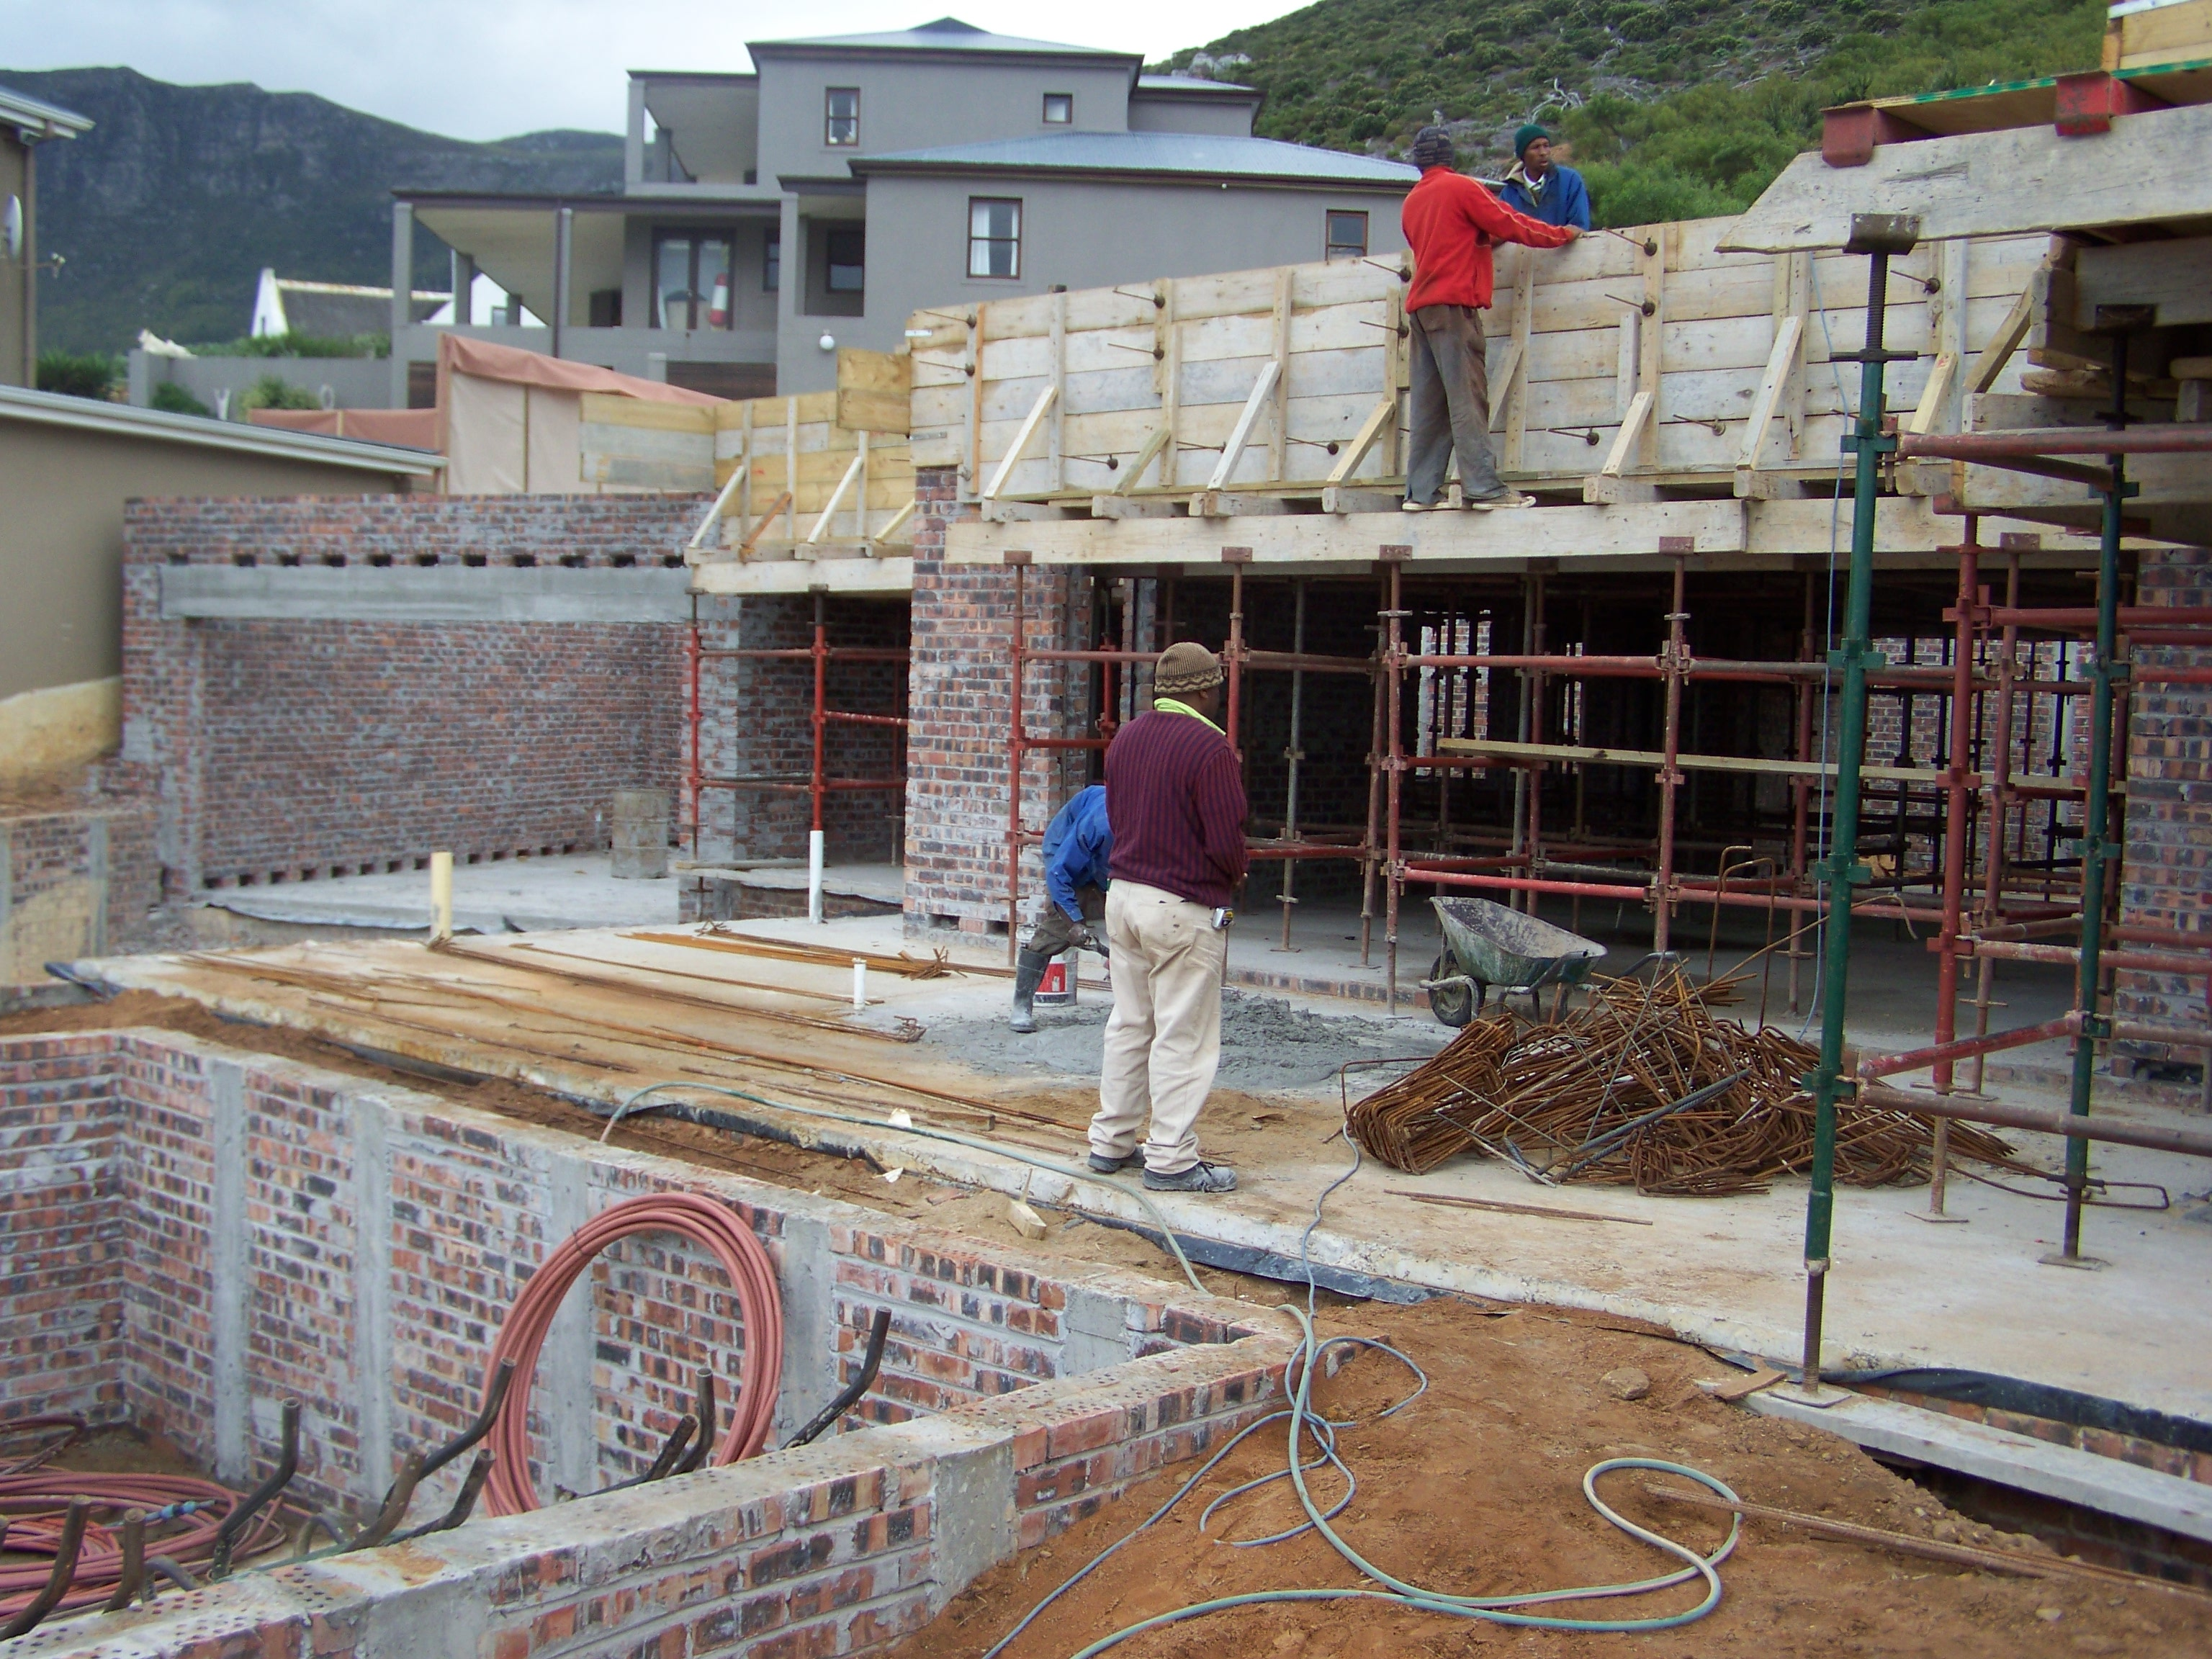 Image of Jenkor Recent Projects Building Site